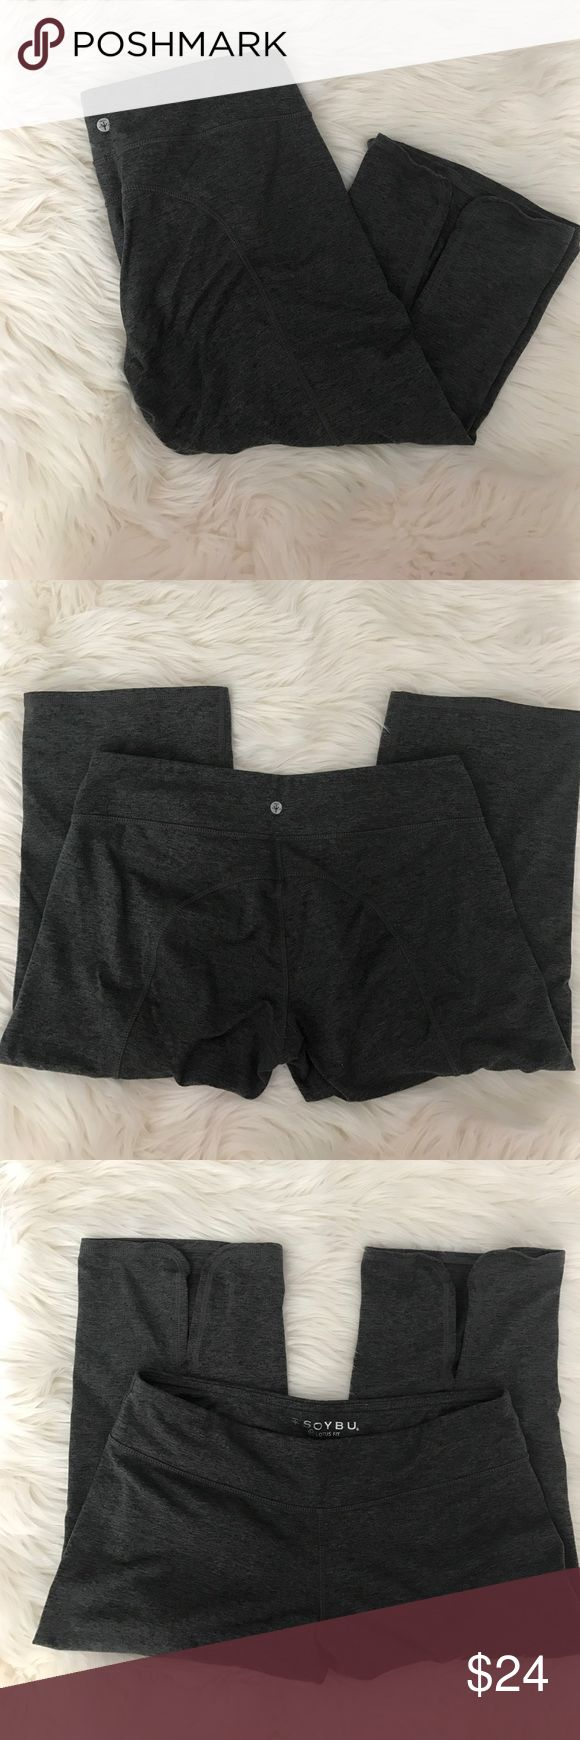 Soybu Lotus Fit Yoga Capri Soybu Lotus Fit Yoga Capri.  Slits at back of knees (shown in photos).  Super cute and comfy.  Offers and bundles welcome :) Soybu Pants Capris